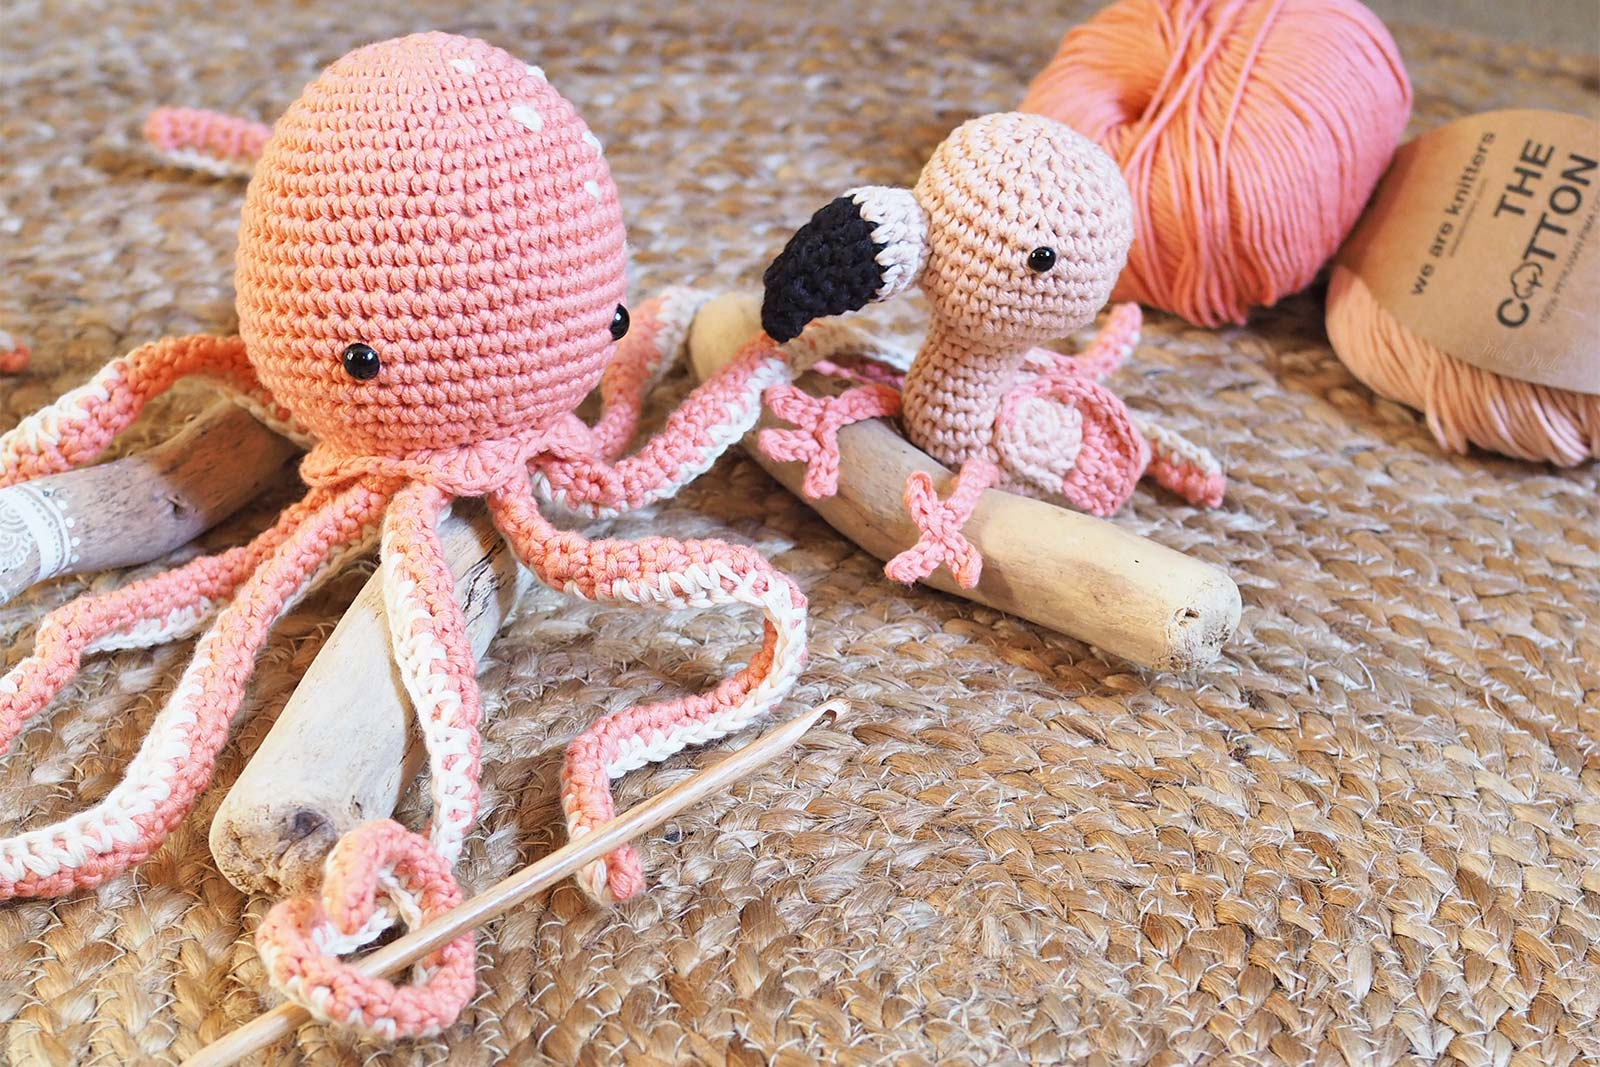 saumon coton Pima we are knitters crochet flamant rose octopus pieuvre poulpe laboutiquedemelimelo